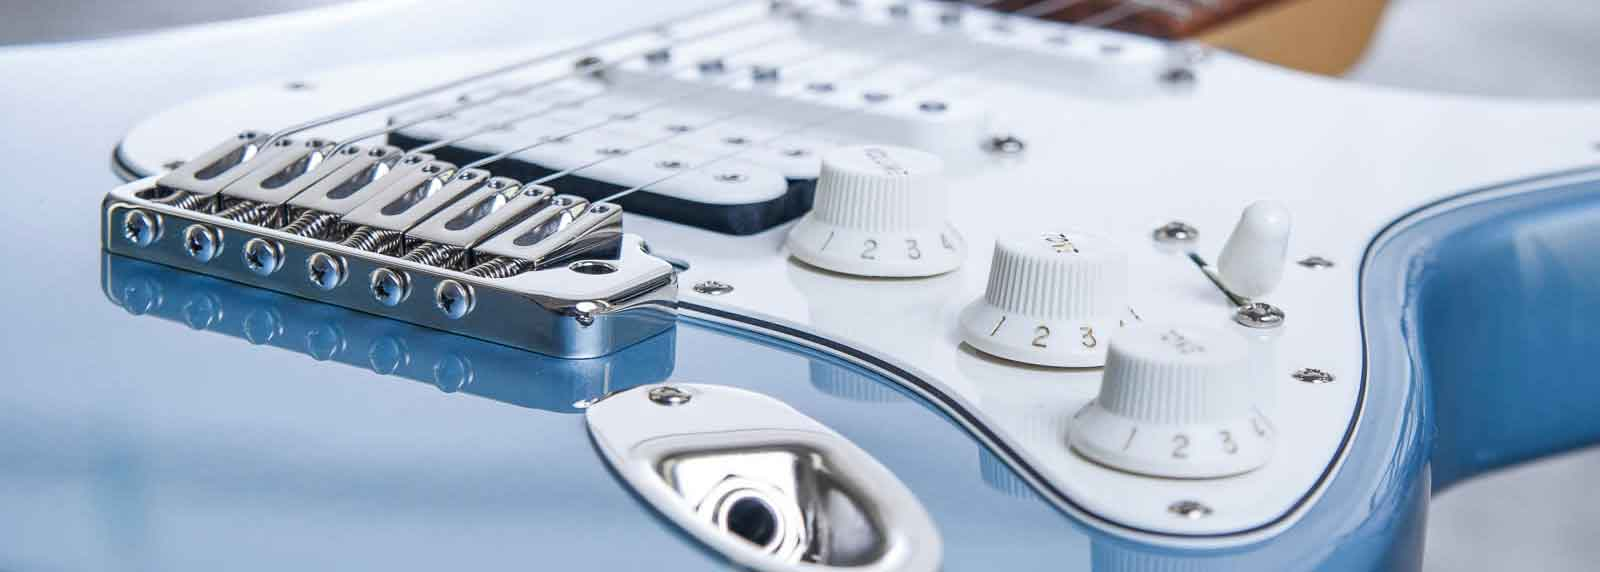 Order_Page_blue_guitar